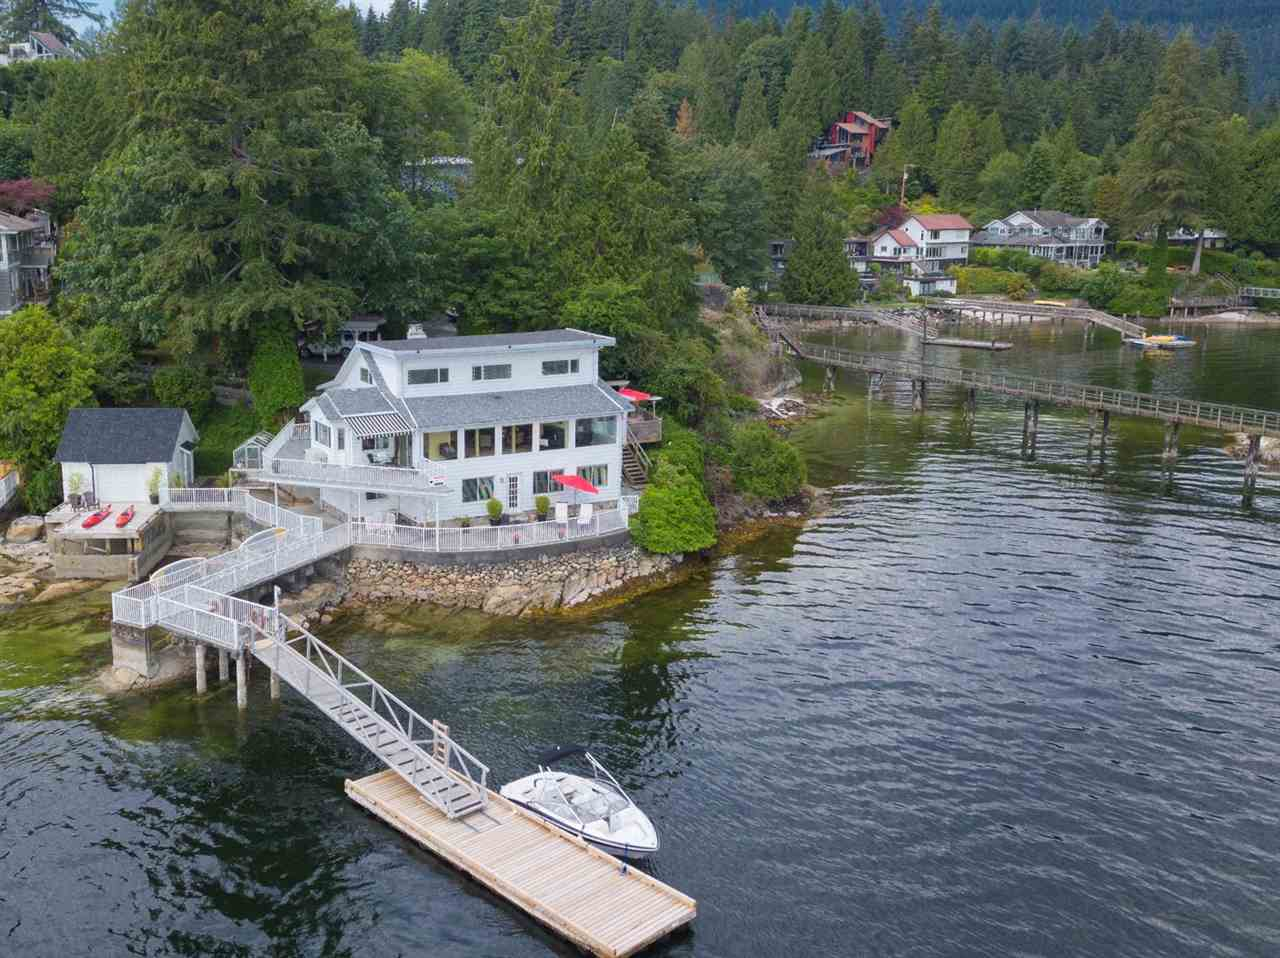 This spectacular waterfront oasis offers a peaceful and serene setting! Rarely do homes like this come on the market - with over 114' feet of waterfront  - your own private dock, a free-standing Boathouse and Beach access - ideal for kayaking, paddleboarding, swimming, and boating. This lovingly cared for family home has been well maintained and updated through the years, it's hard to find another home  situated this close to the water which makes this extra special. Offering 4042 square feet; with 5 bedrooms, 5 bathrooms, gas fireplace, large windows all embracing the water views. Private wrap around patios and decks too. An overall gorgeous 11,500 square foot property, with garden sheds, terraced lawns, lovely gardens and mature trees. Call today to view this irreplaceable property!